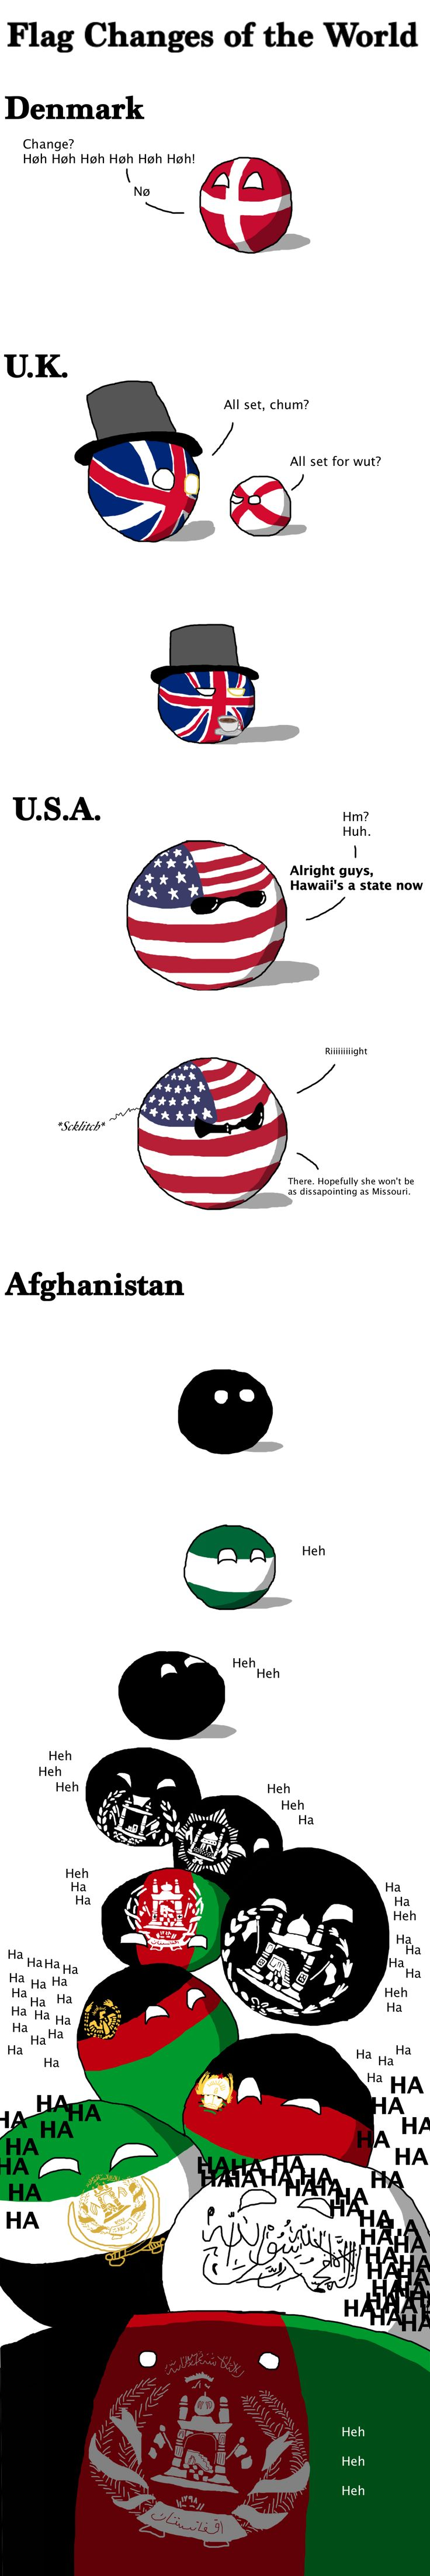 Flag Changes of the World